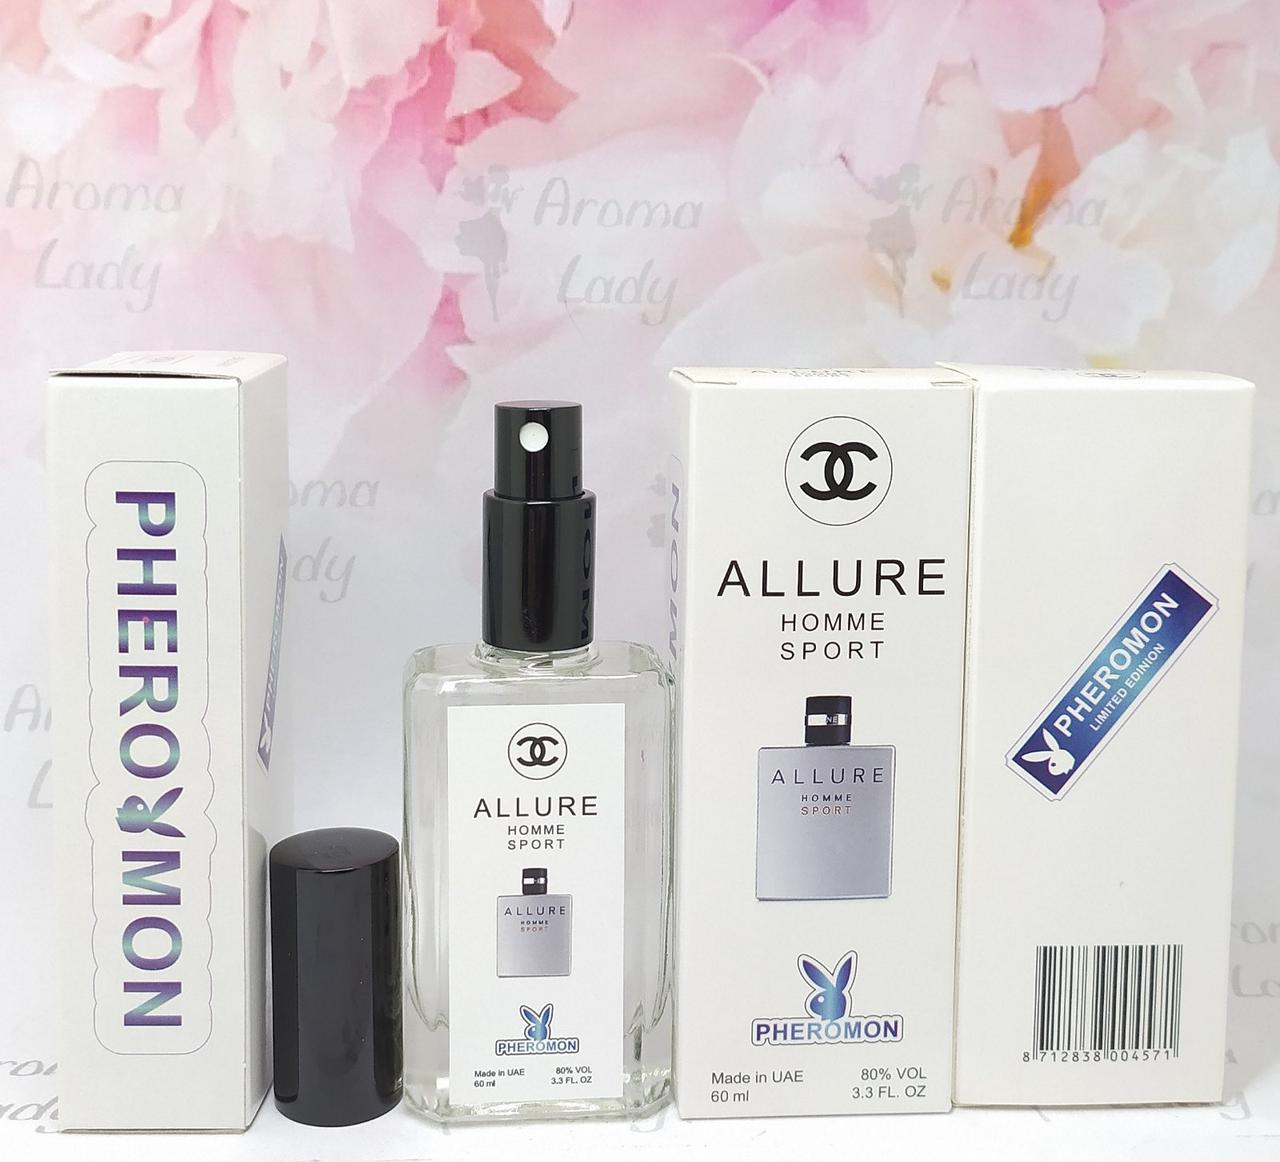 Мужской аромат Chanel Allure homme Sport (Шанель Аллюр хом Спорт) с феромонами 60 мл